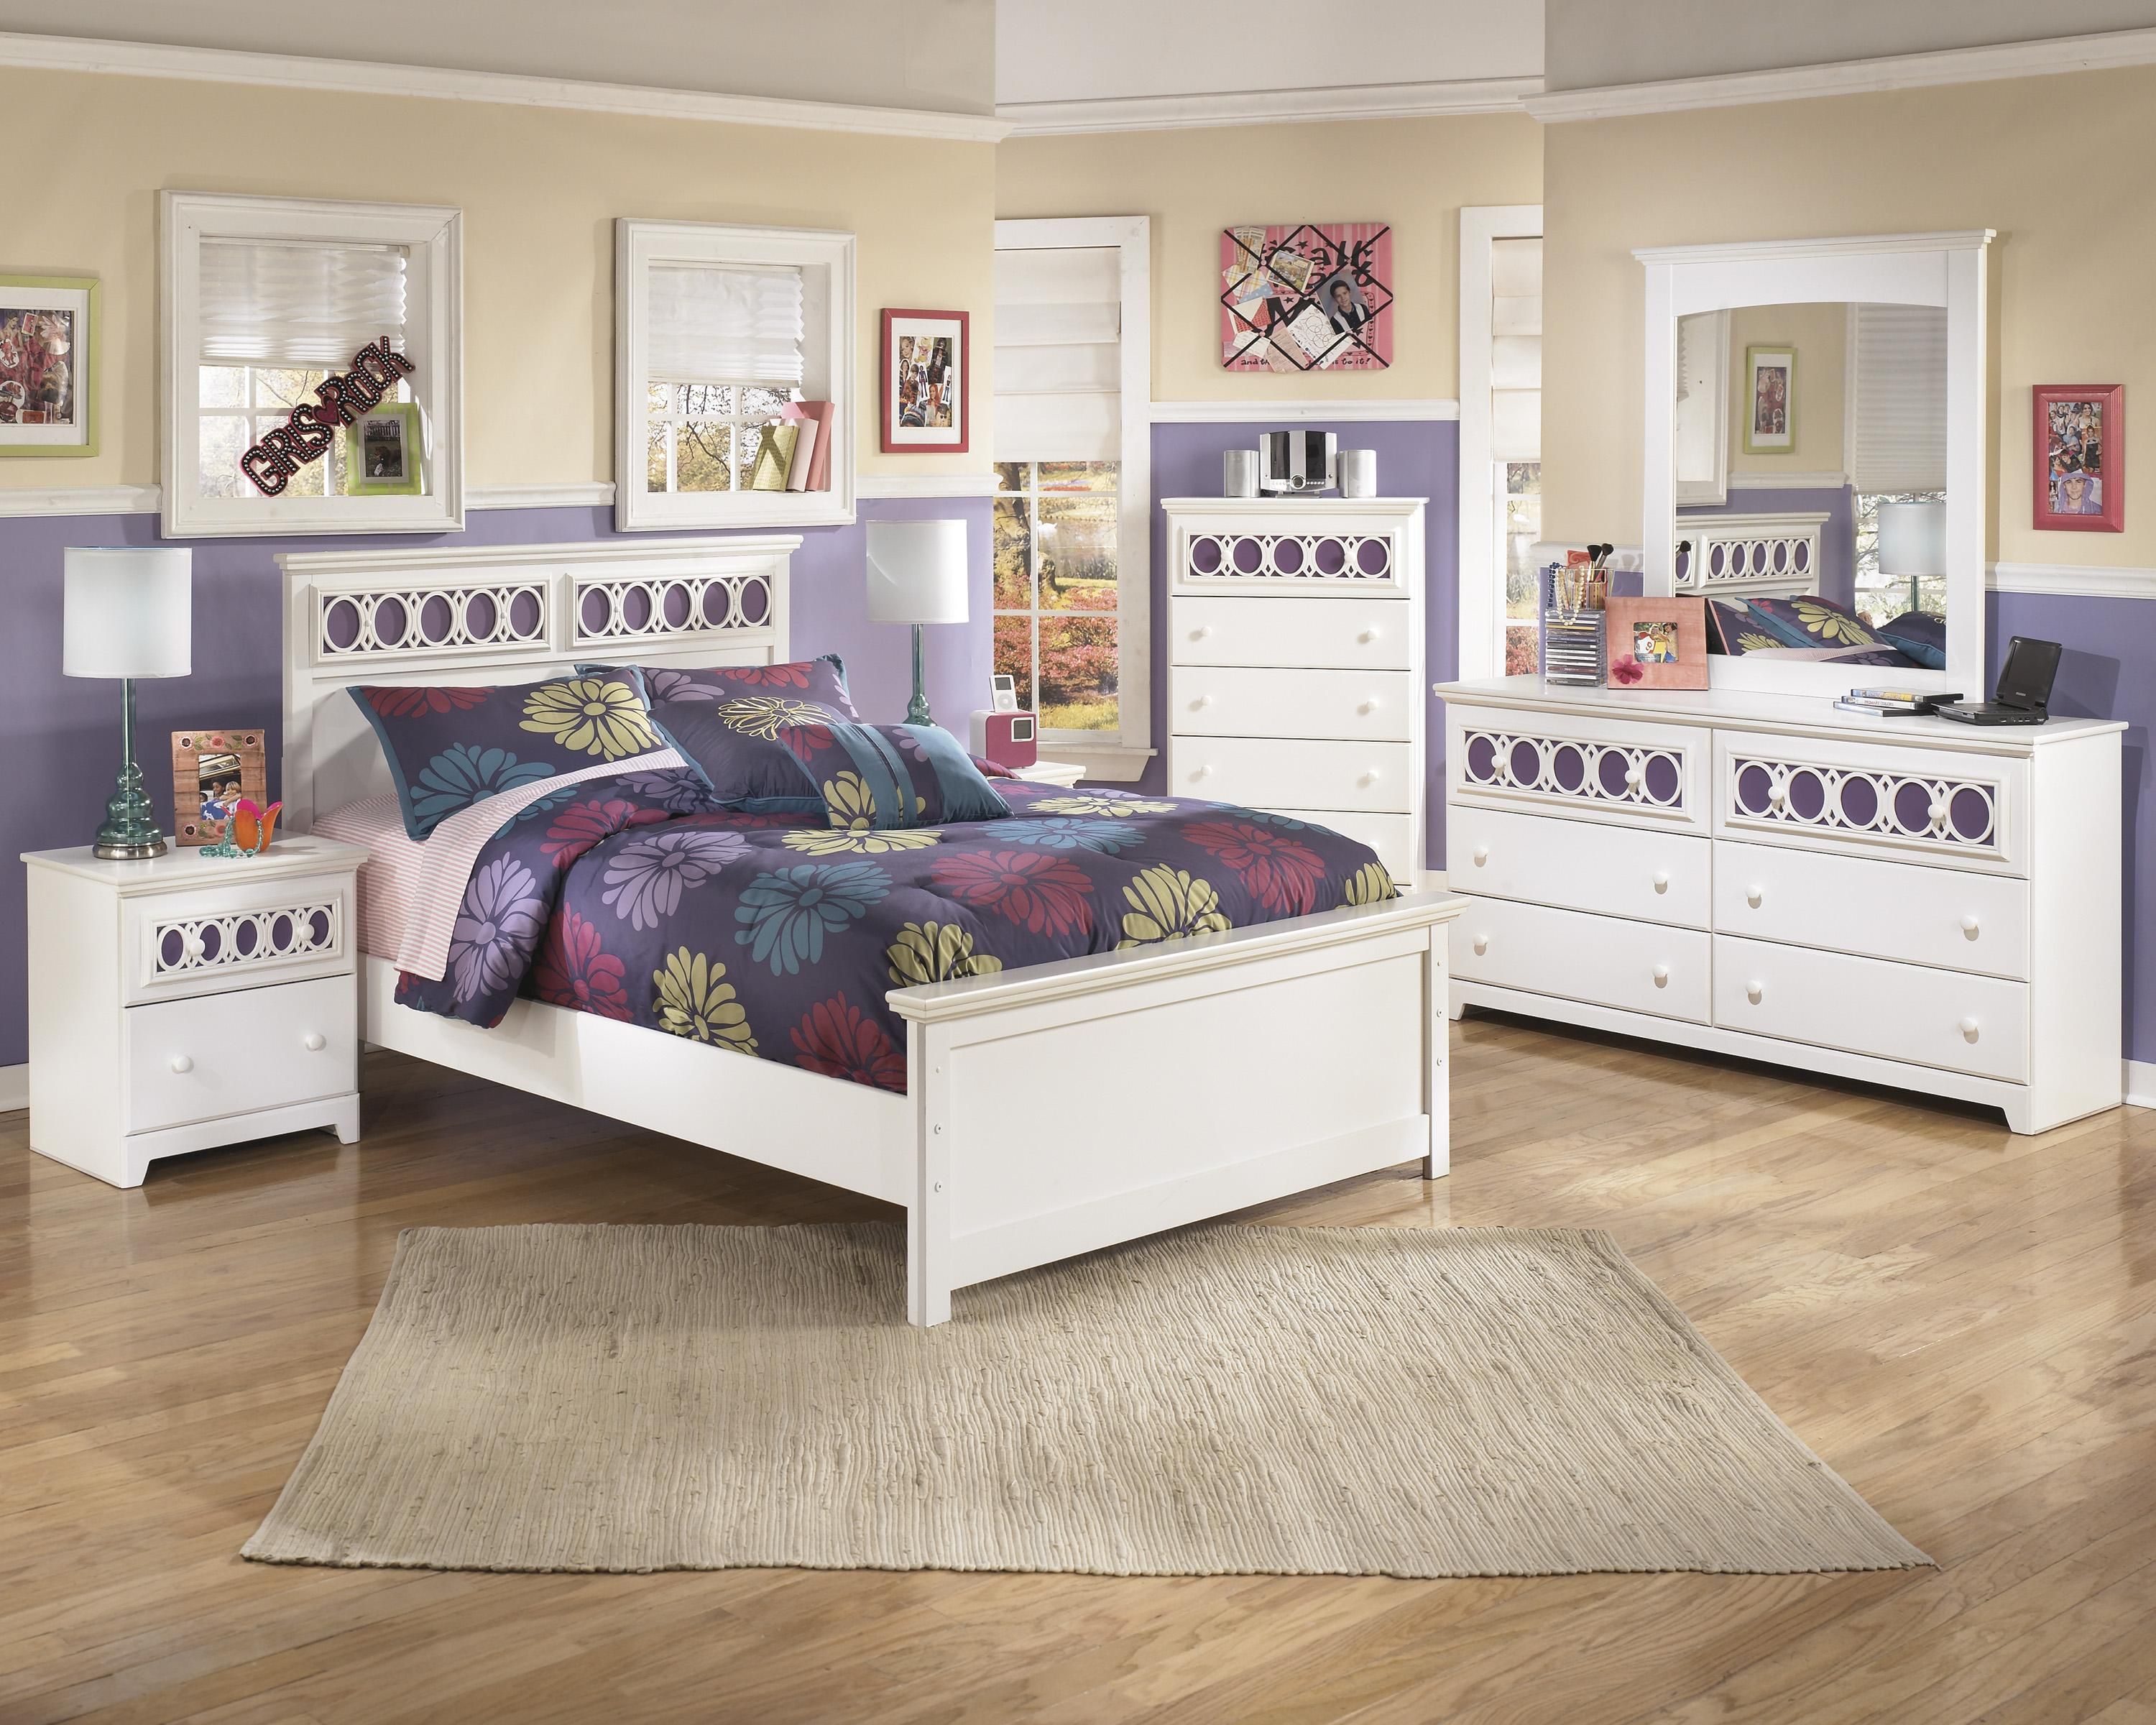 Signature design by ashley zayley full bedroom group - Ashley furniture full bedroom sets ...